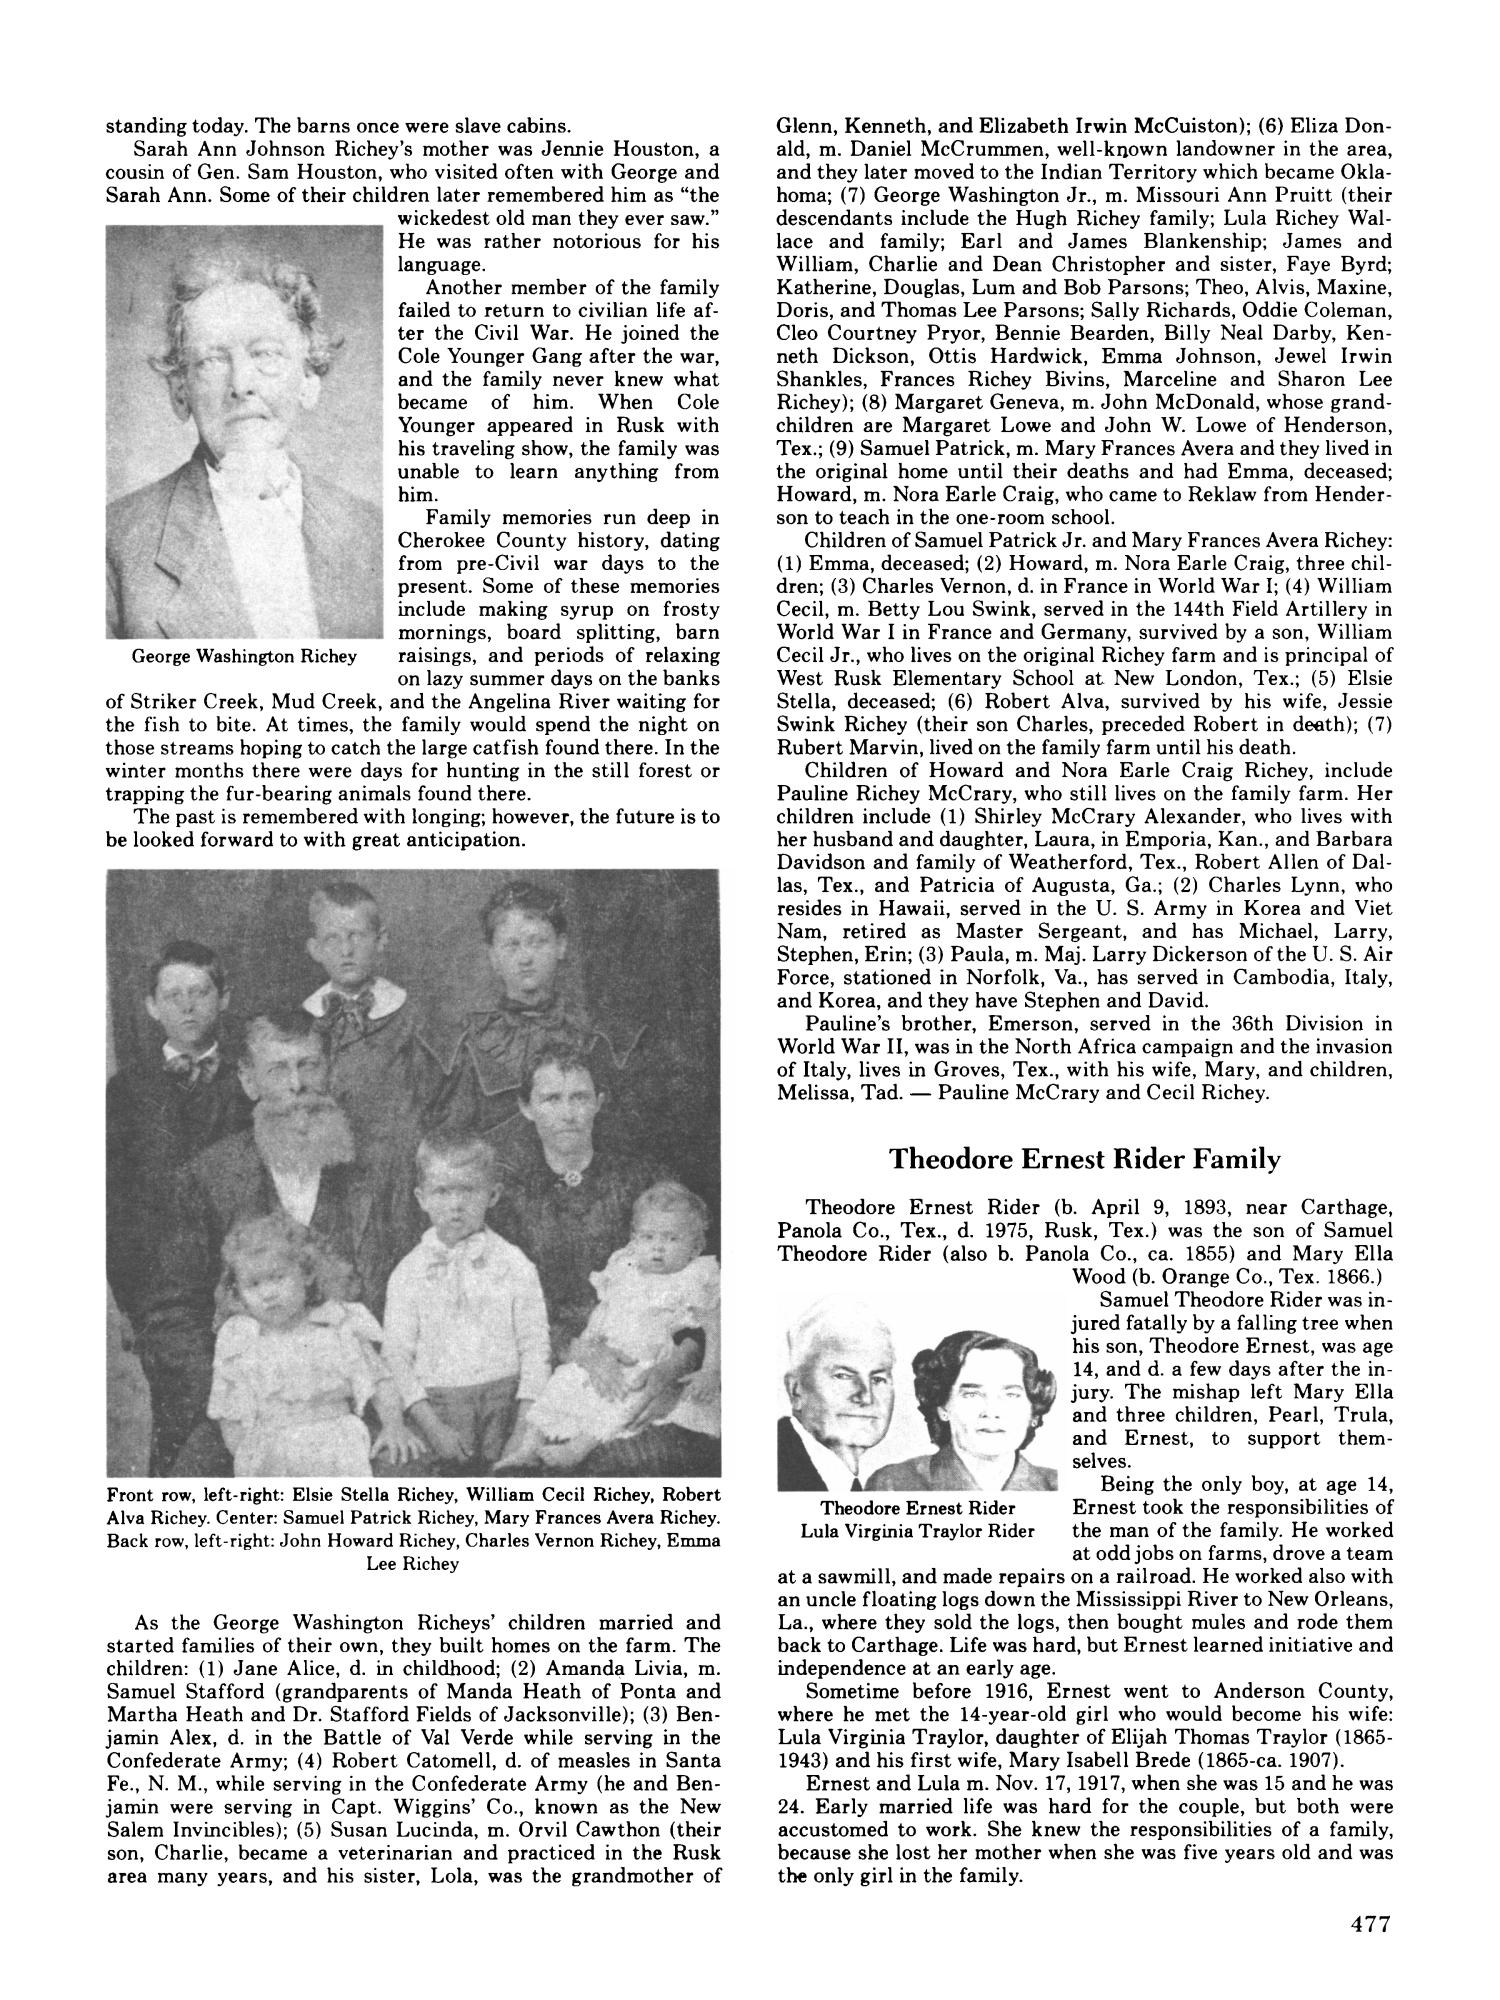 shop nice cheap where can i buy Cherokee County History - Page 477 - The Portal to Texas History